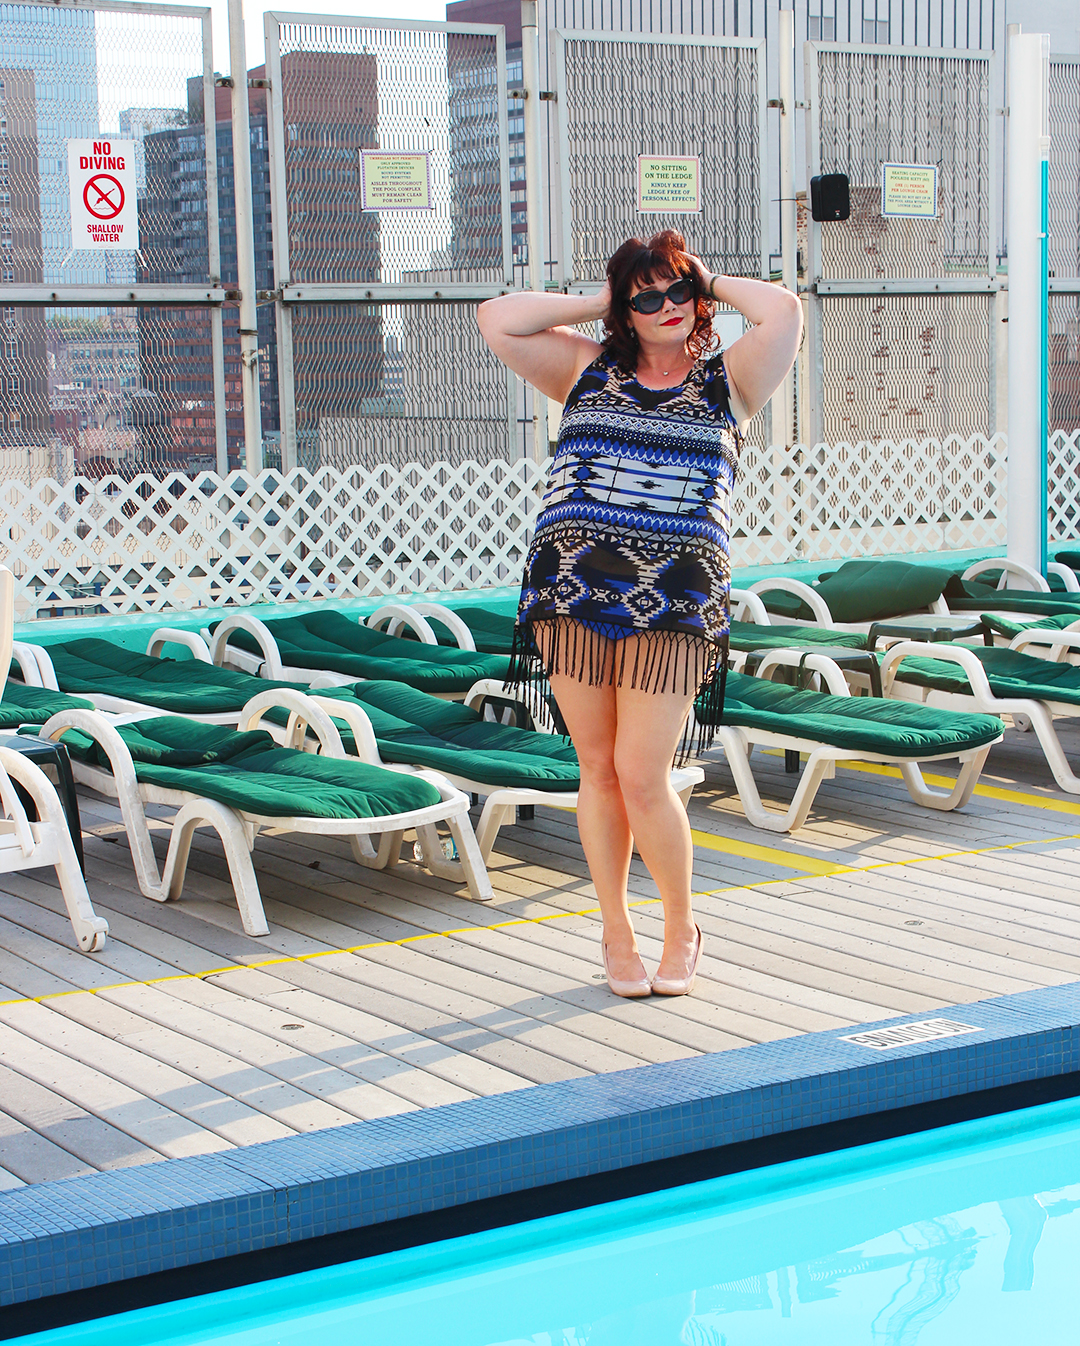 Plus Size Blogger Amber from Style Plus Curves in a Plus Size Bikini from Always for Me, Golden Confidence Pool Party, New York Rooftop